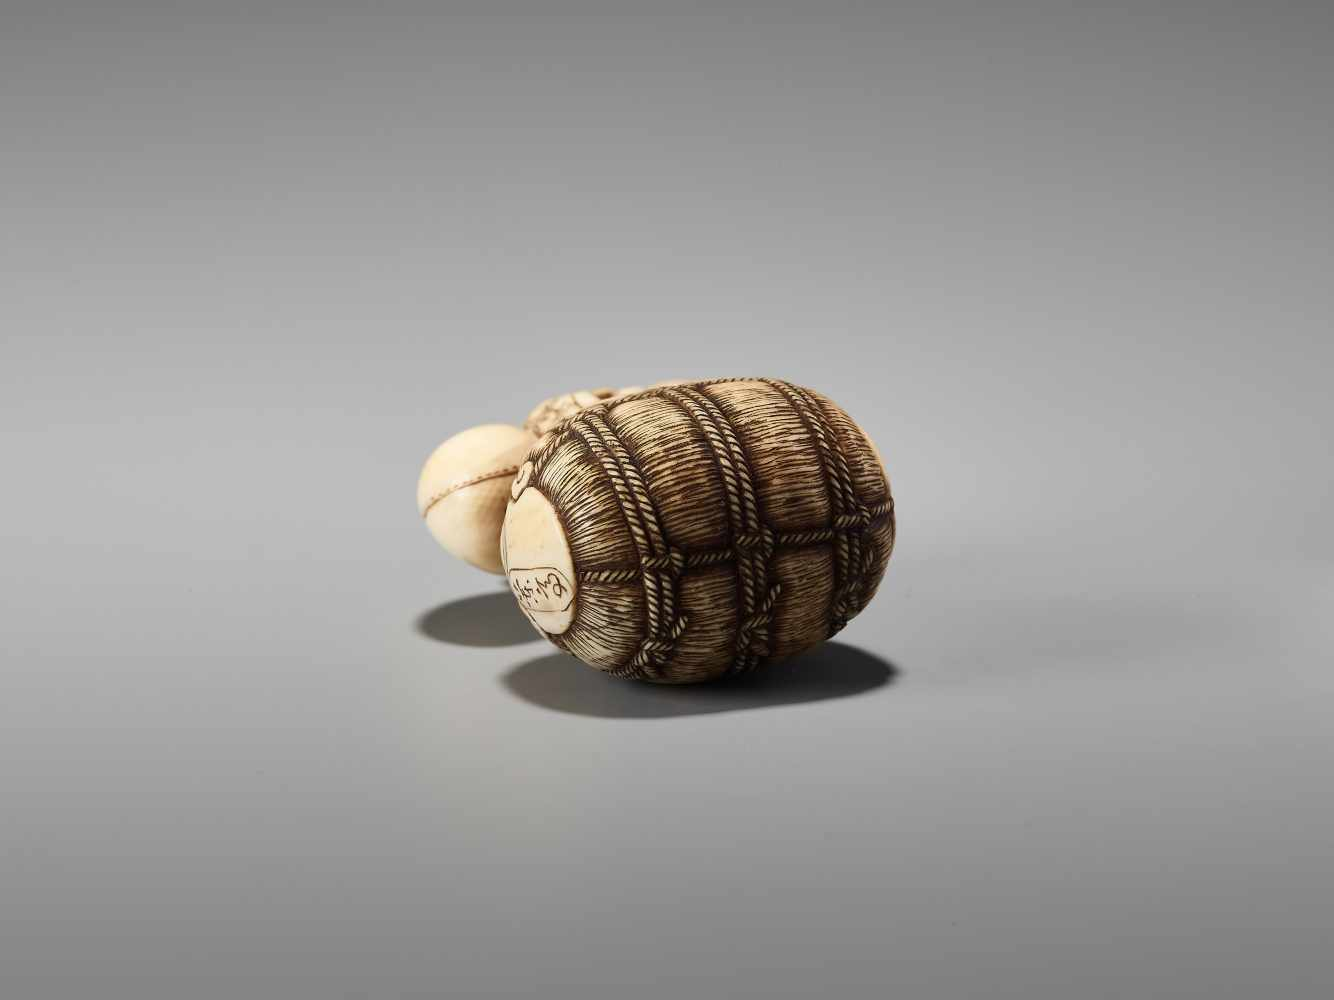 Los 38 - AN IVORY NETSUKE OF DAIKOKU ON A RICE BALE BY RANTEIBy Rantei, ivory netsukeJapan, Kyoto, mid-19th